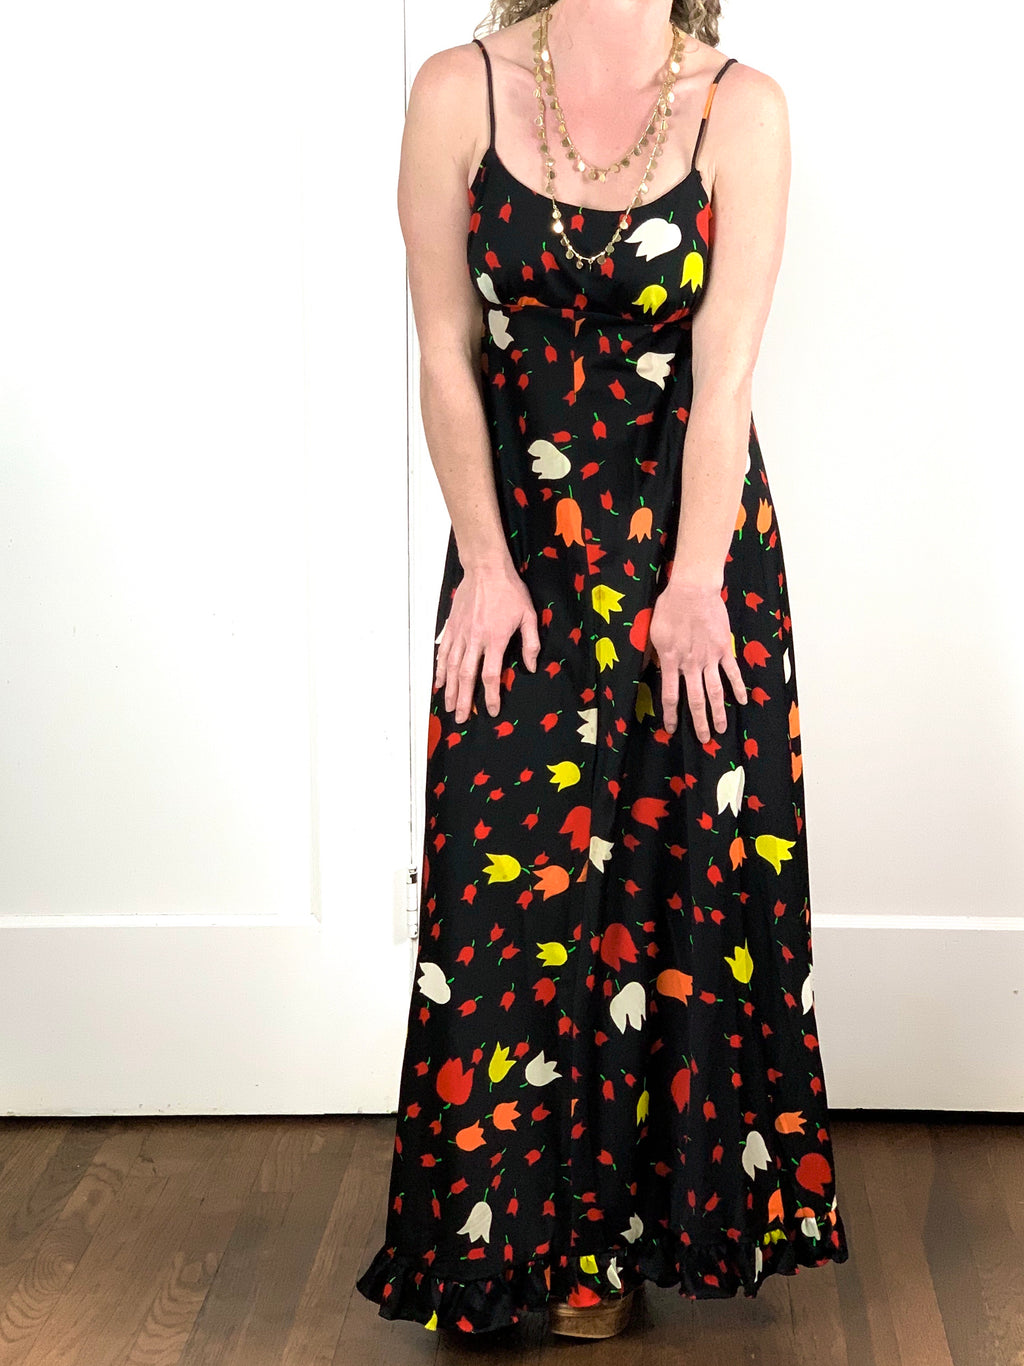 Black Tulip Maxi Dress - S